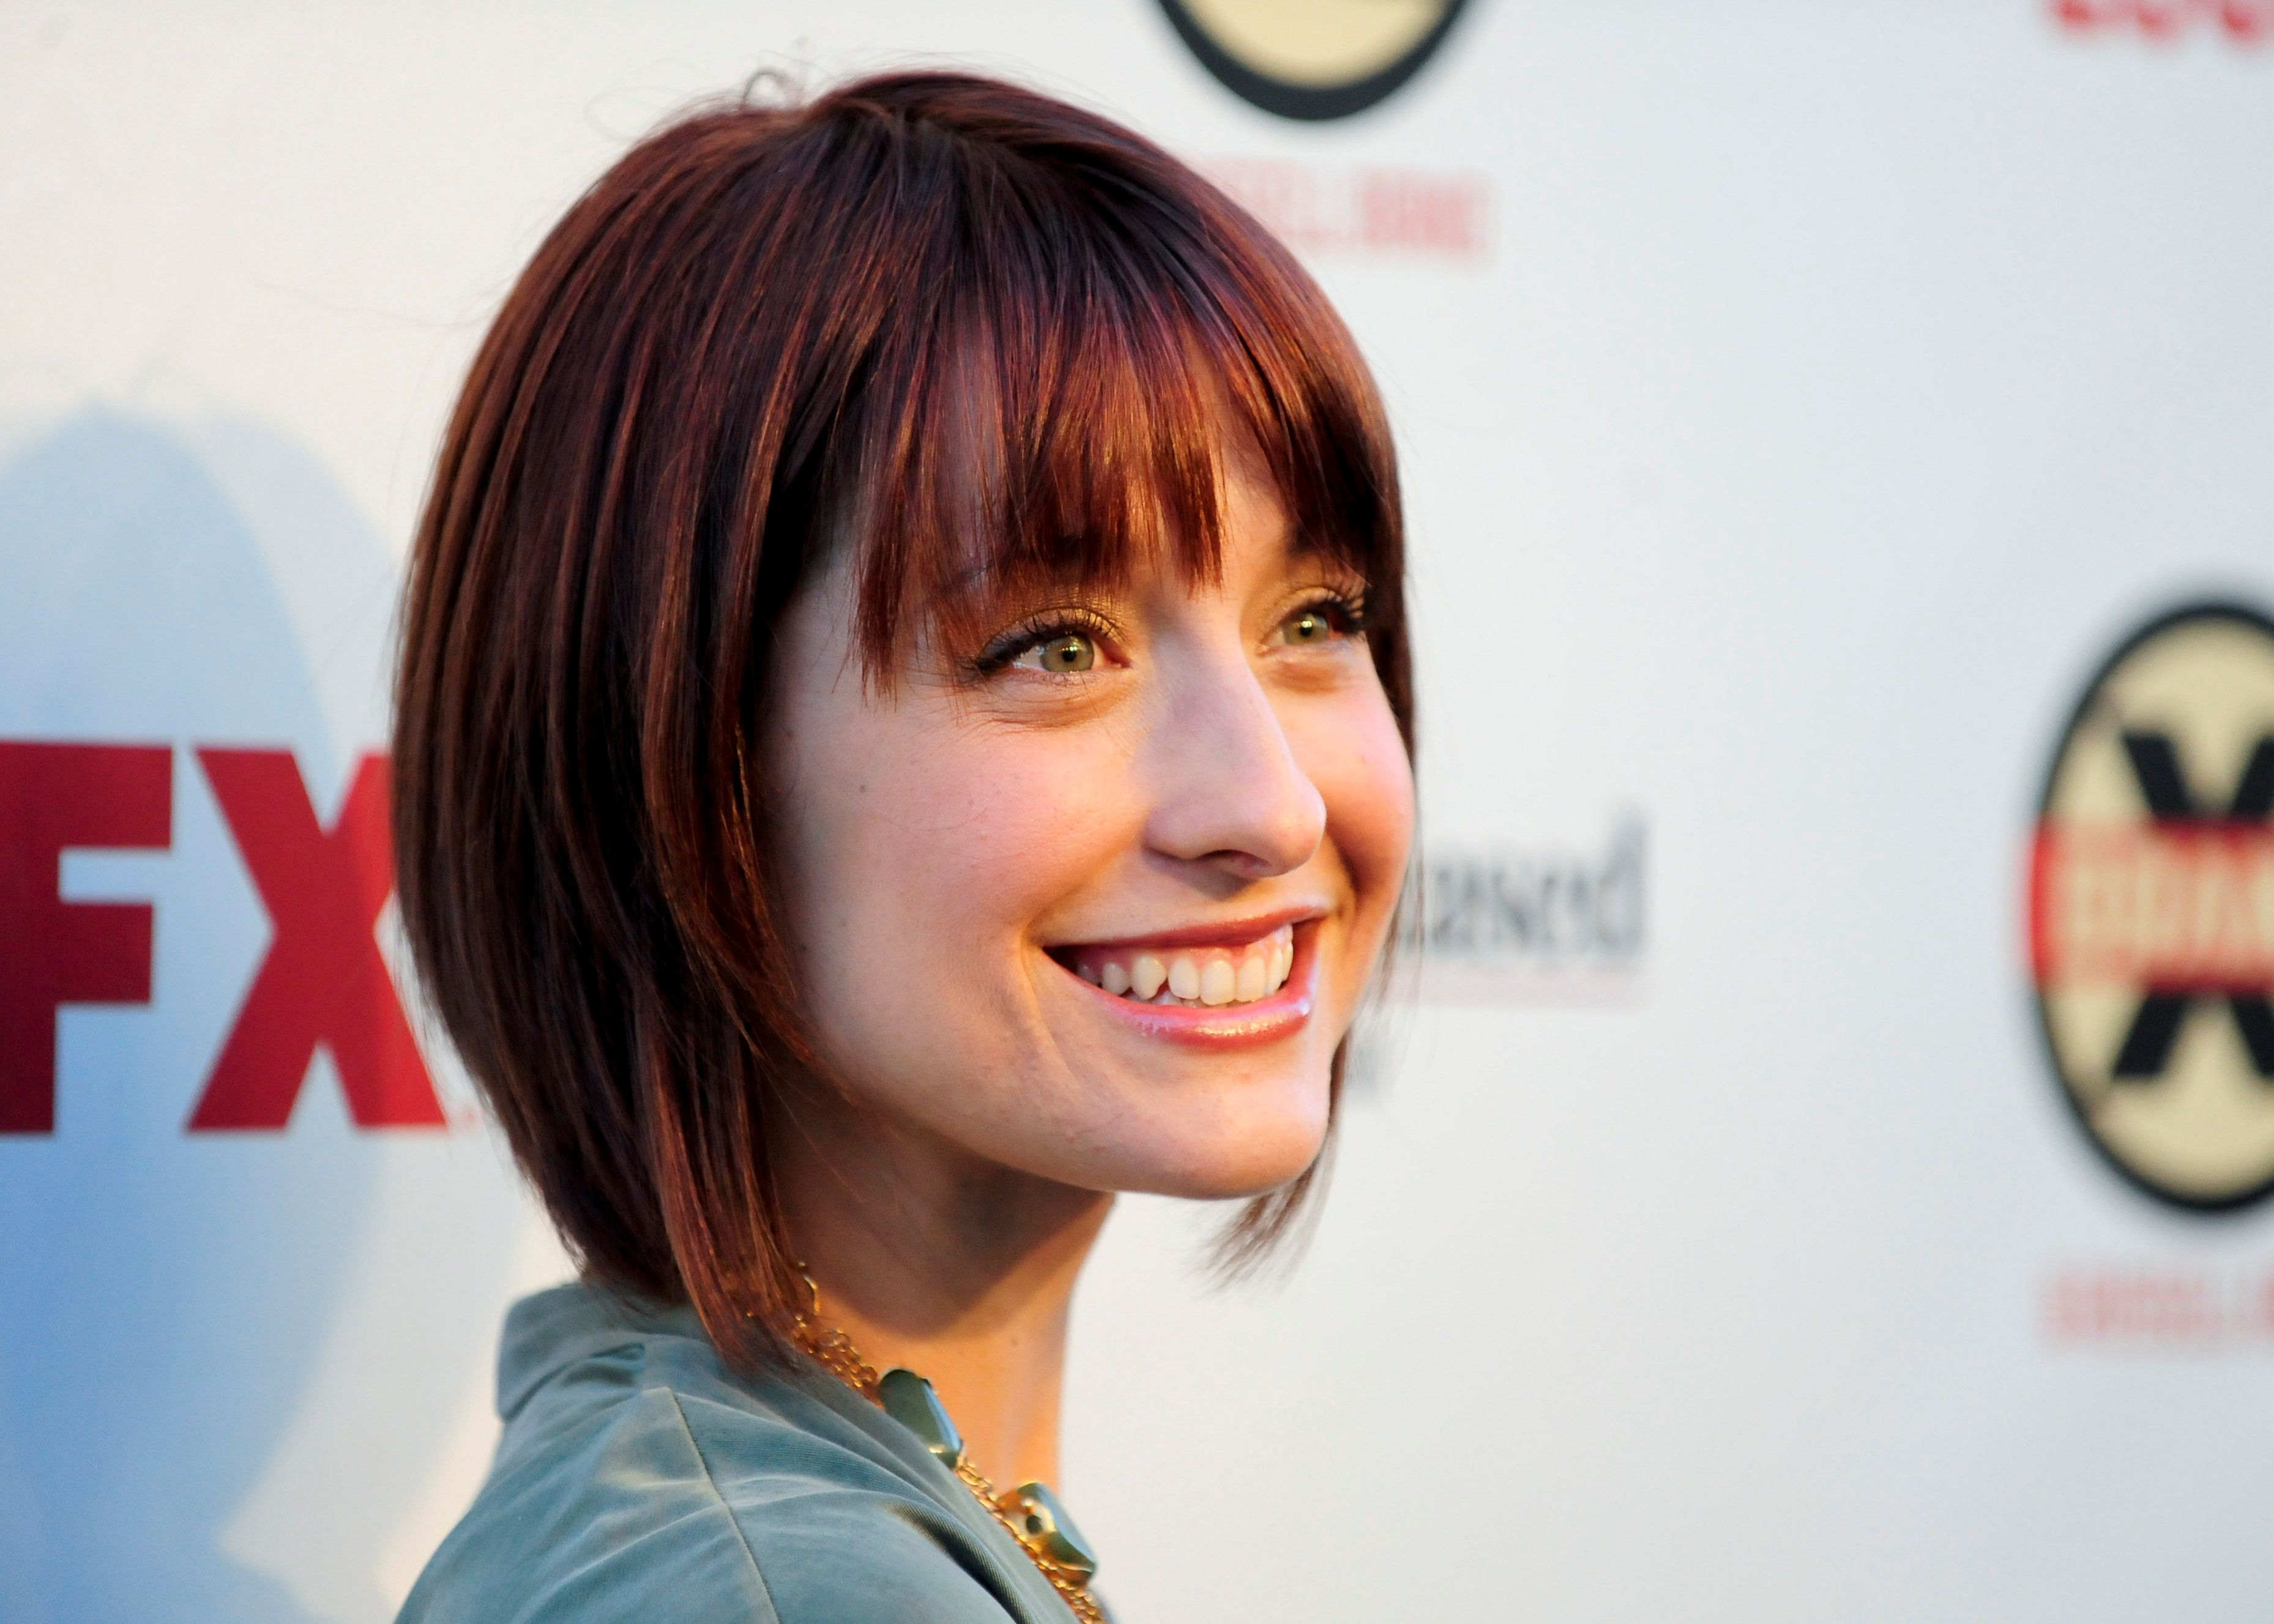 Actress Allison Mack Is Released To Her Parents On $5 Million Bail In Sex Trafficking Case